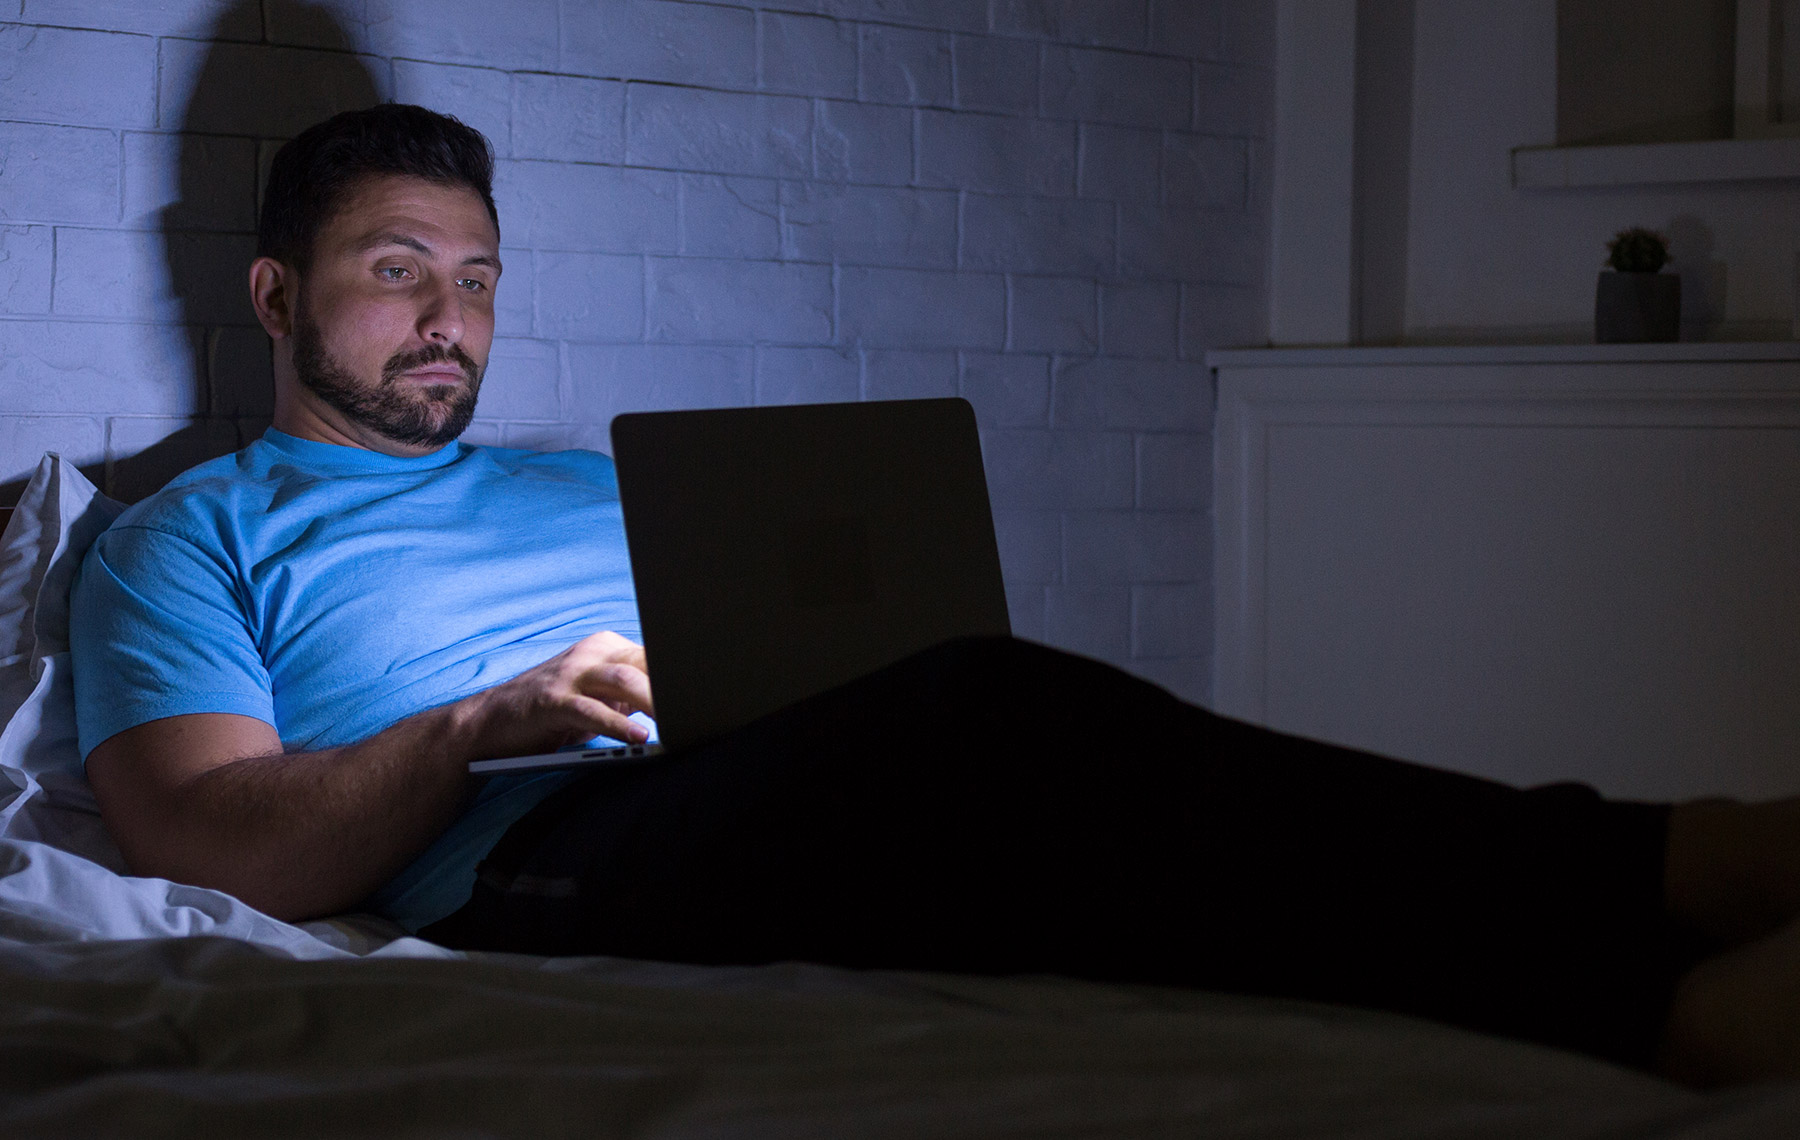 man chatting on laptop in bed instead of sleeping-early bird vs night owl